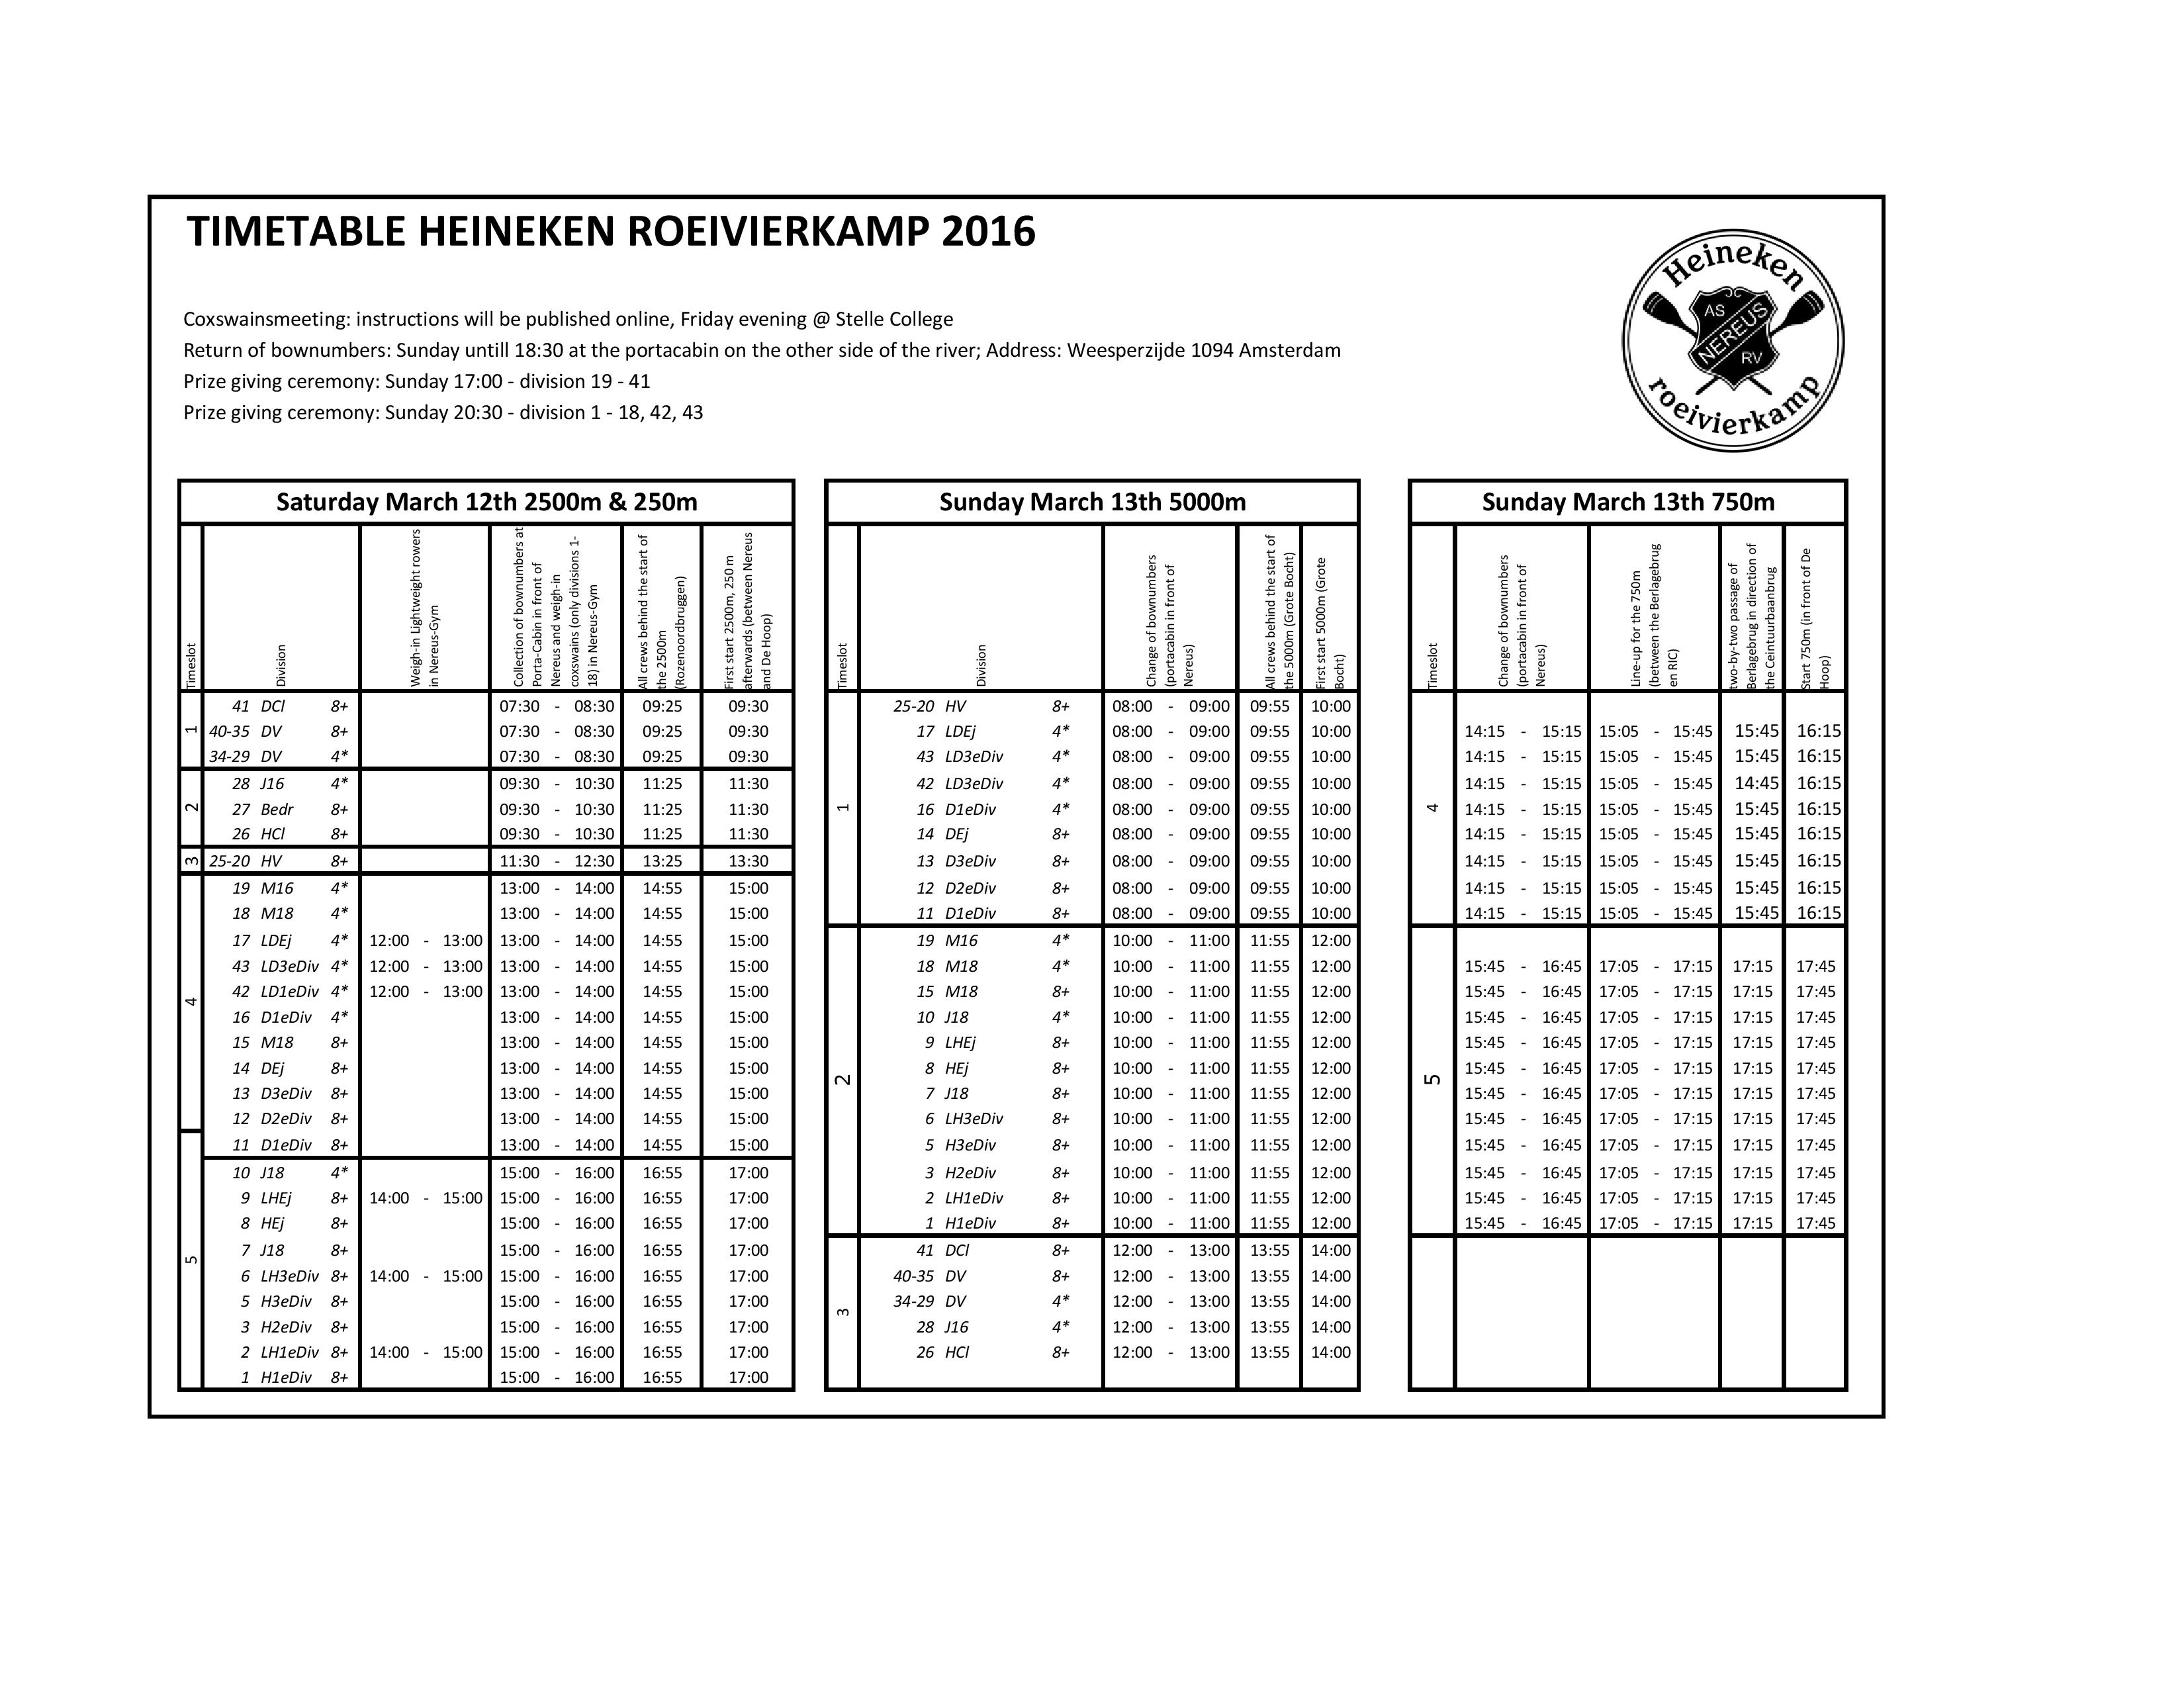 h4k.timetable.2016-page-001